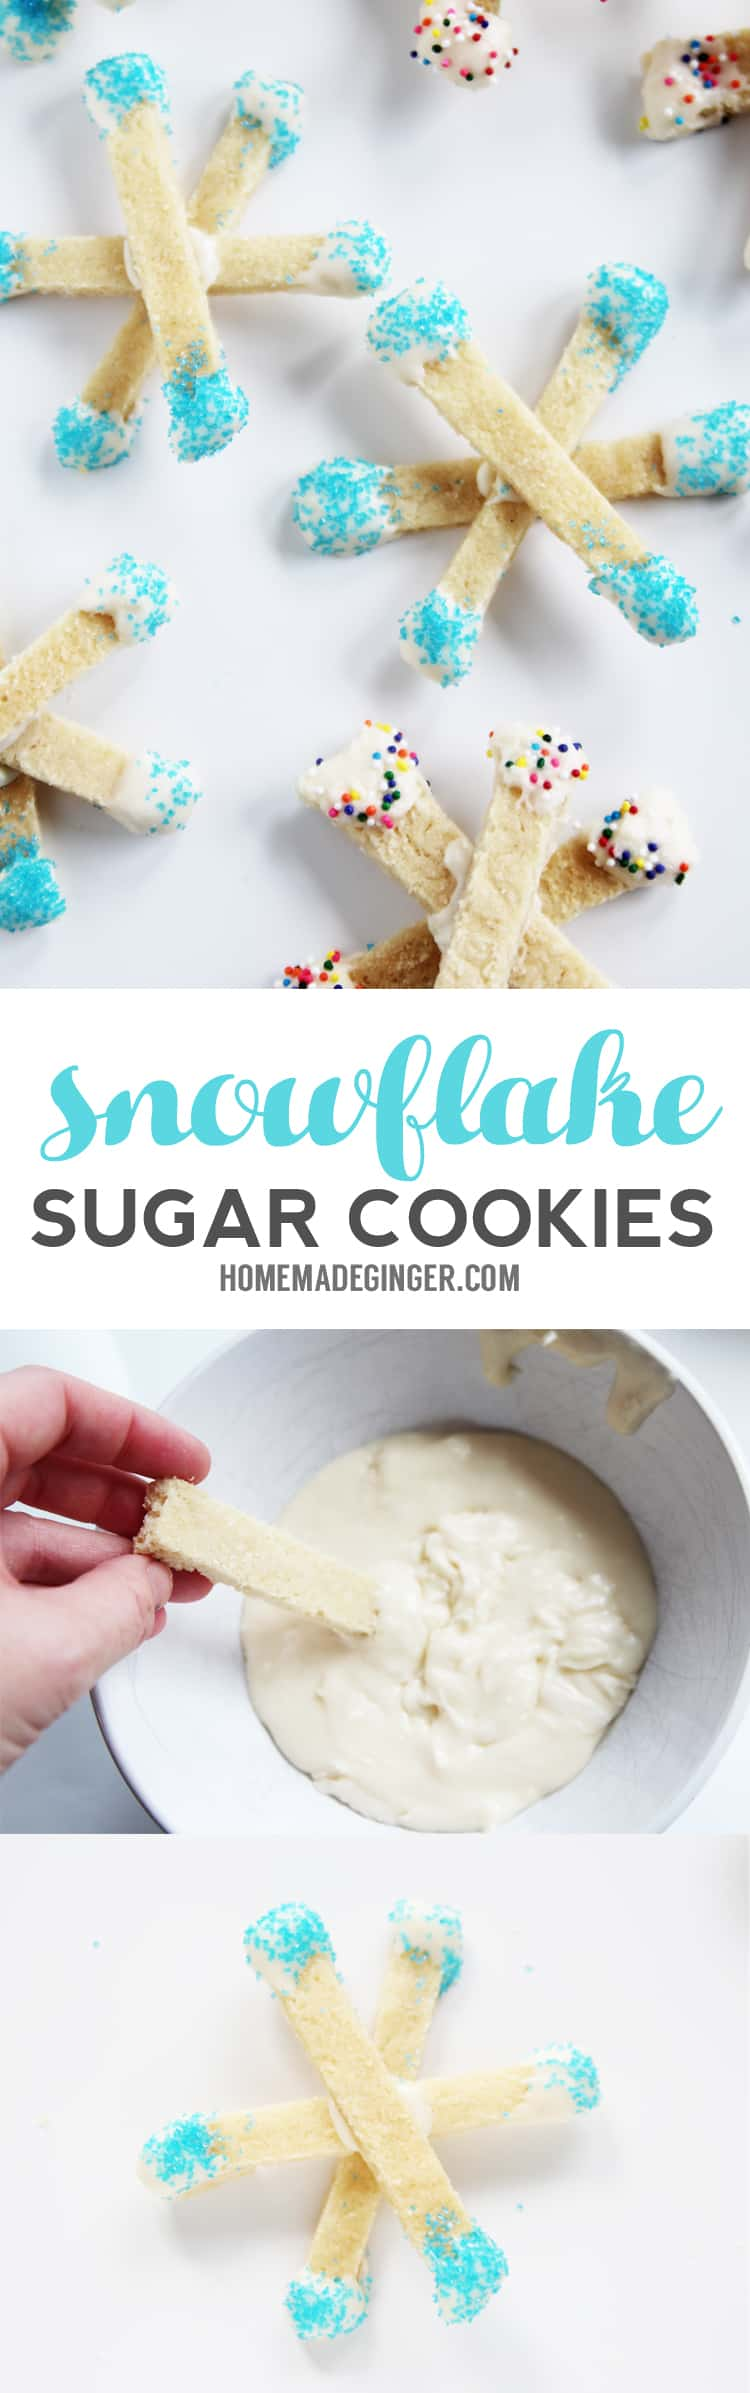 These snowflake cookies are SO EASY to make and the perfect edible snowflake craft for kids to make!